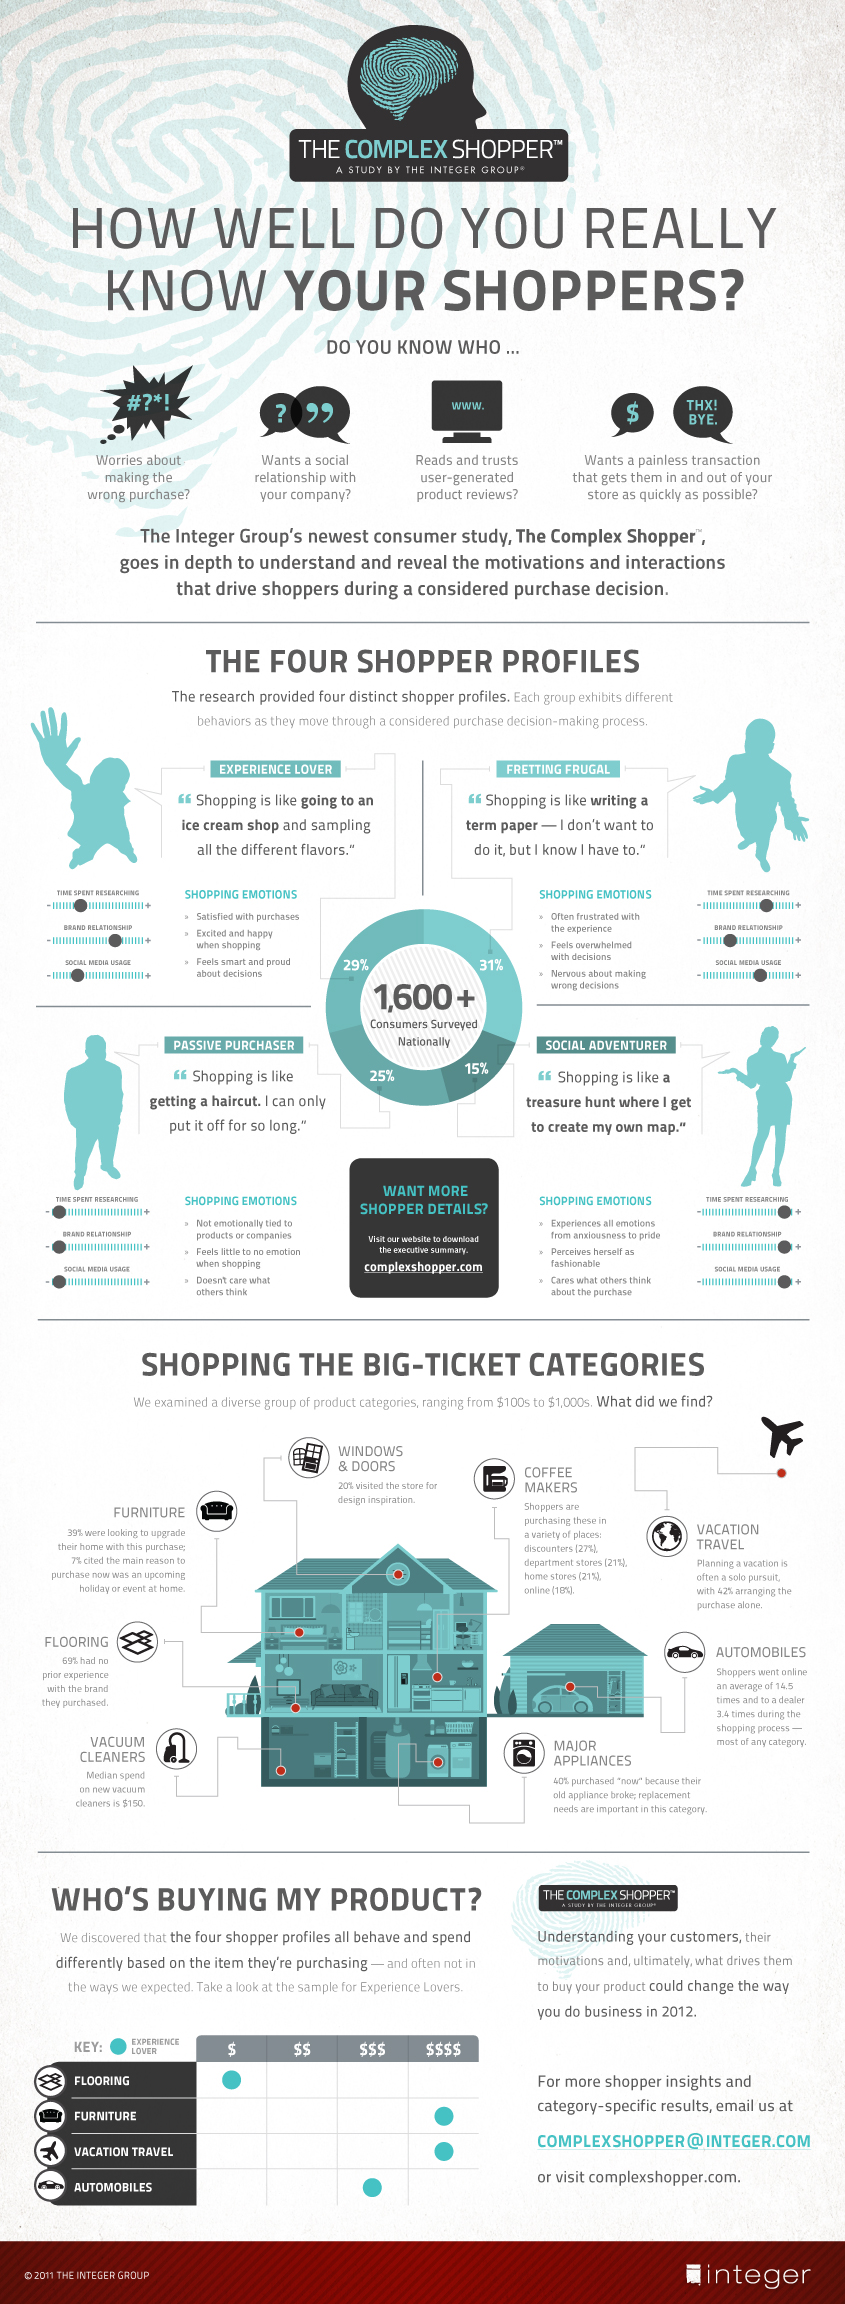 The-Complex-Shopper-infographic